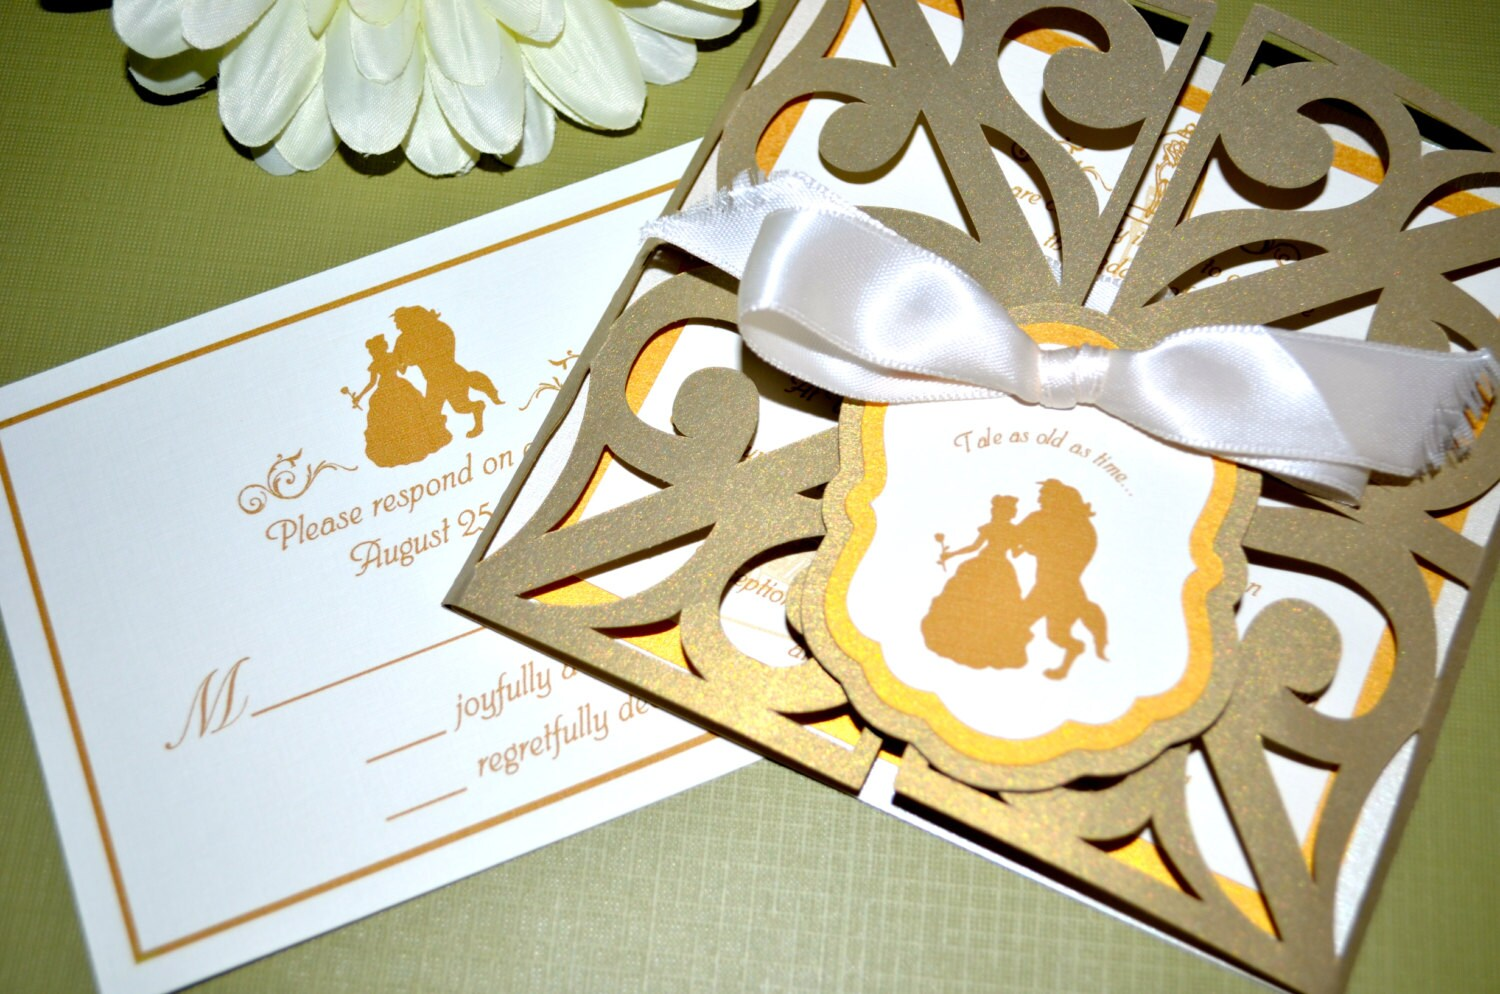 Fairy tale wedding invitations beauty and the beast gate zoom monicamarmolfo Images